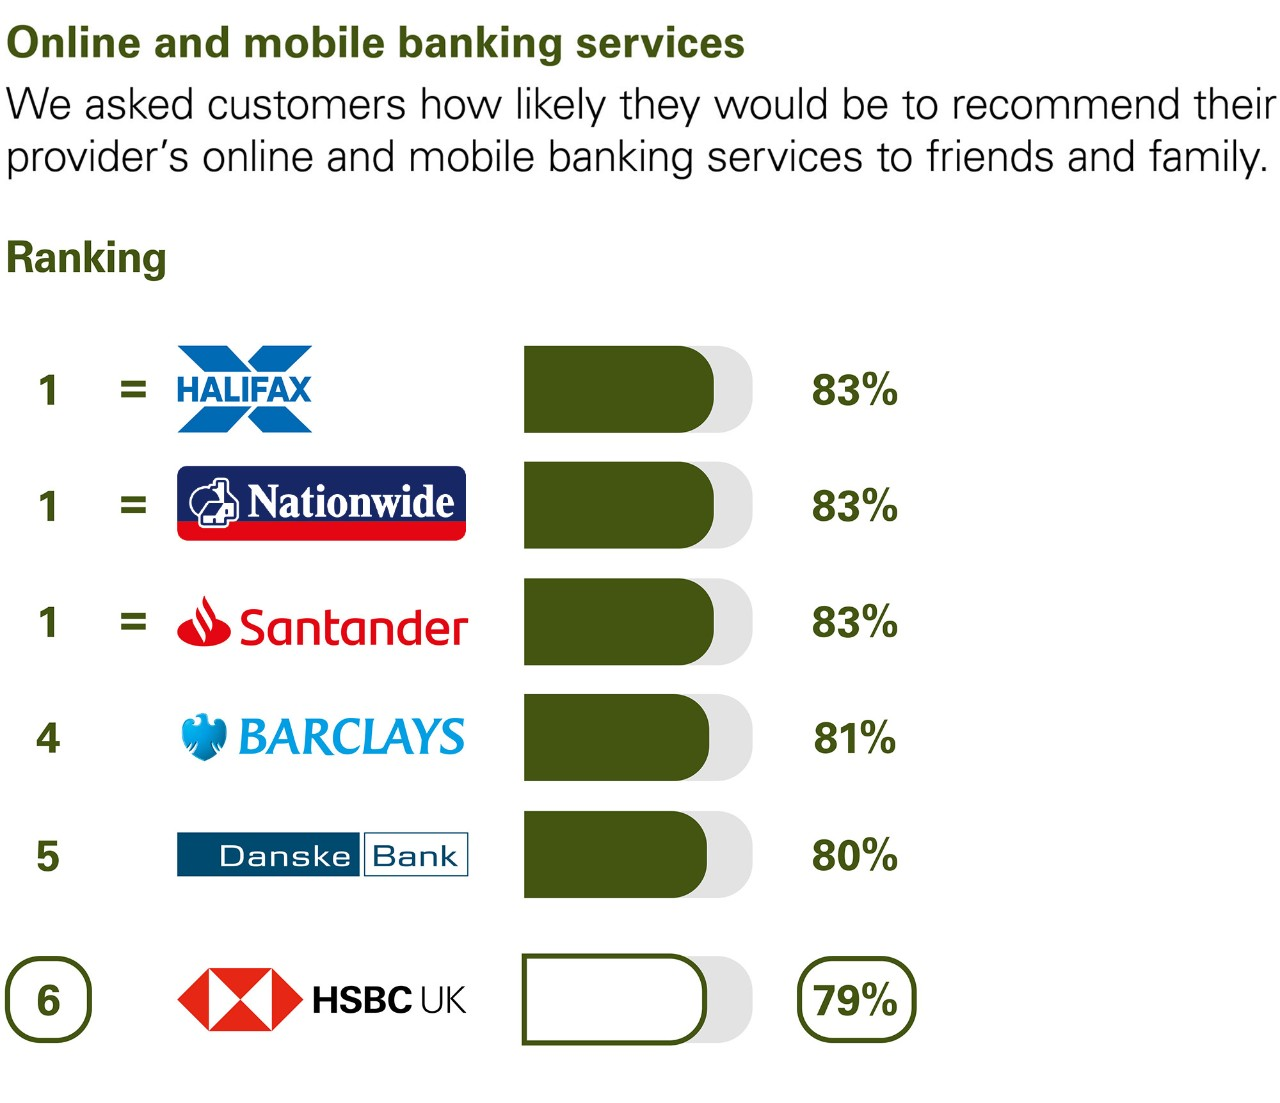 Online and mobile banking services. We asked customers how likely they would be to recommend their provider's online and mobile banking services to friends and family. Ranking: 1 Equal Halifax, Nationwide, and Santander 83%. 4 Barclays 81%. 5 Danske bank 80%. 6 HSBC UK 79%.